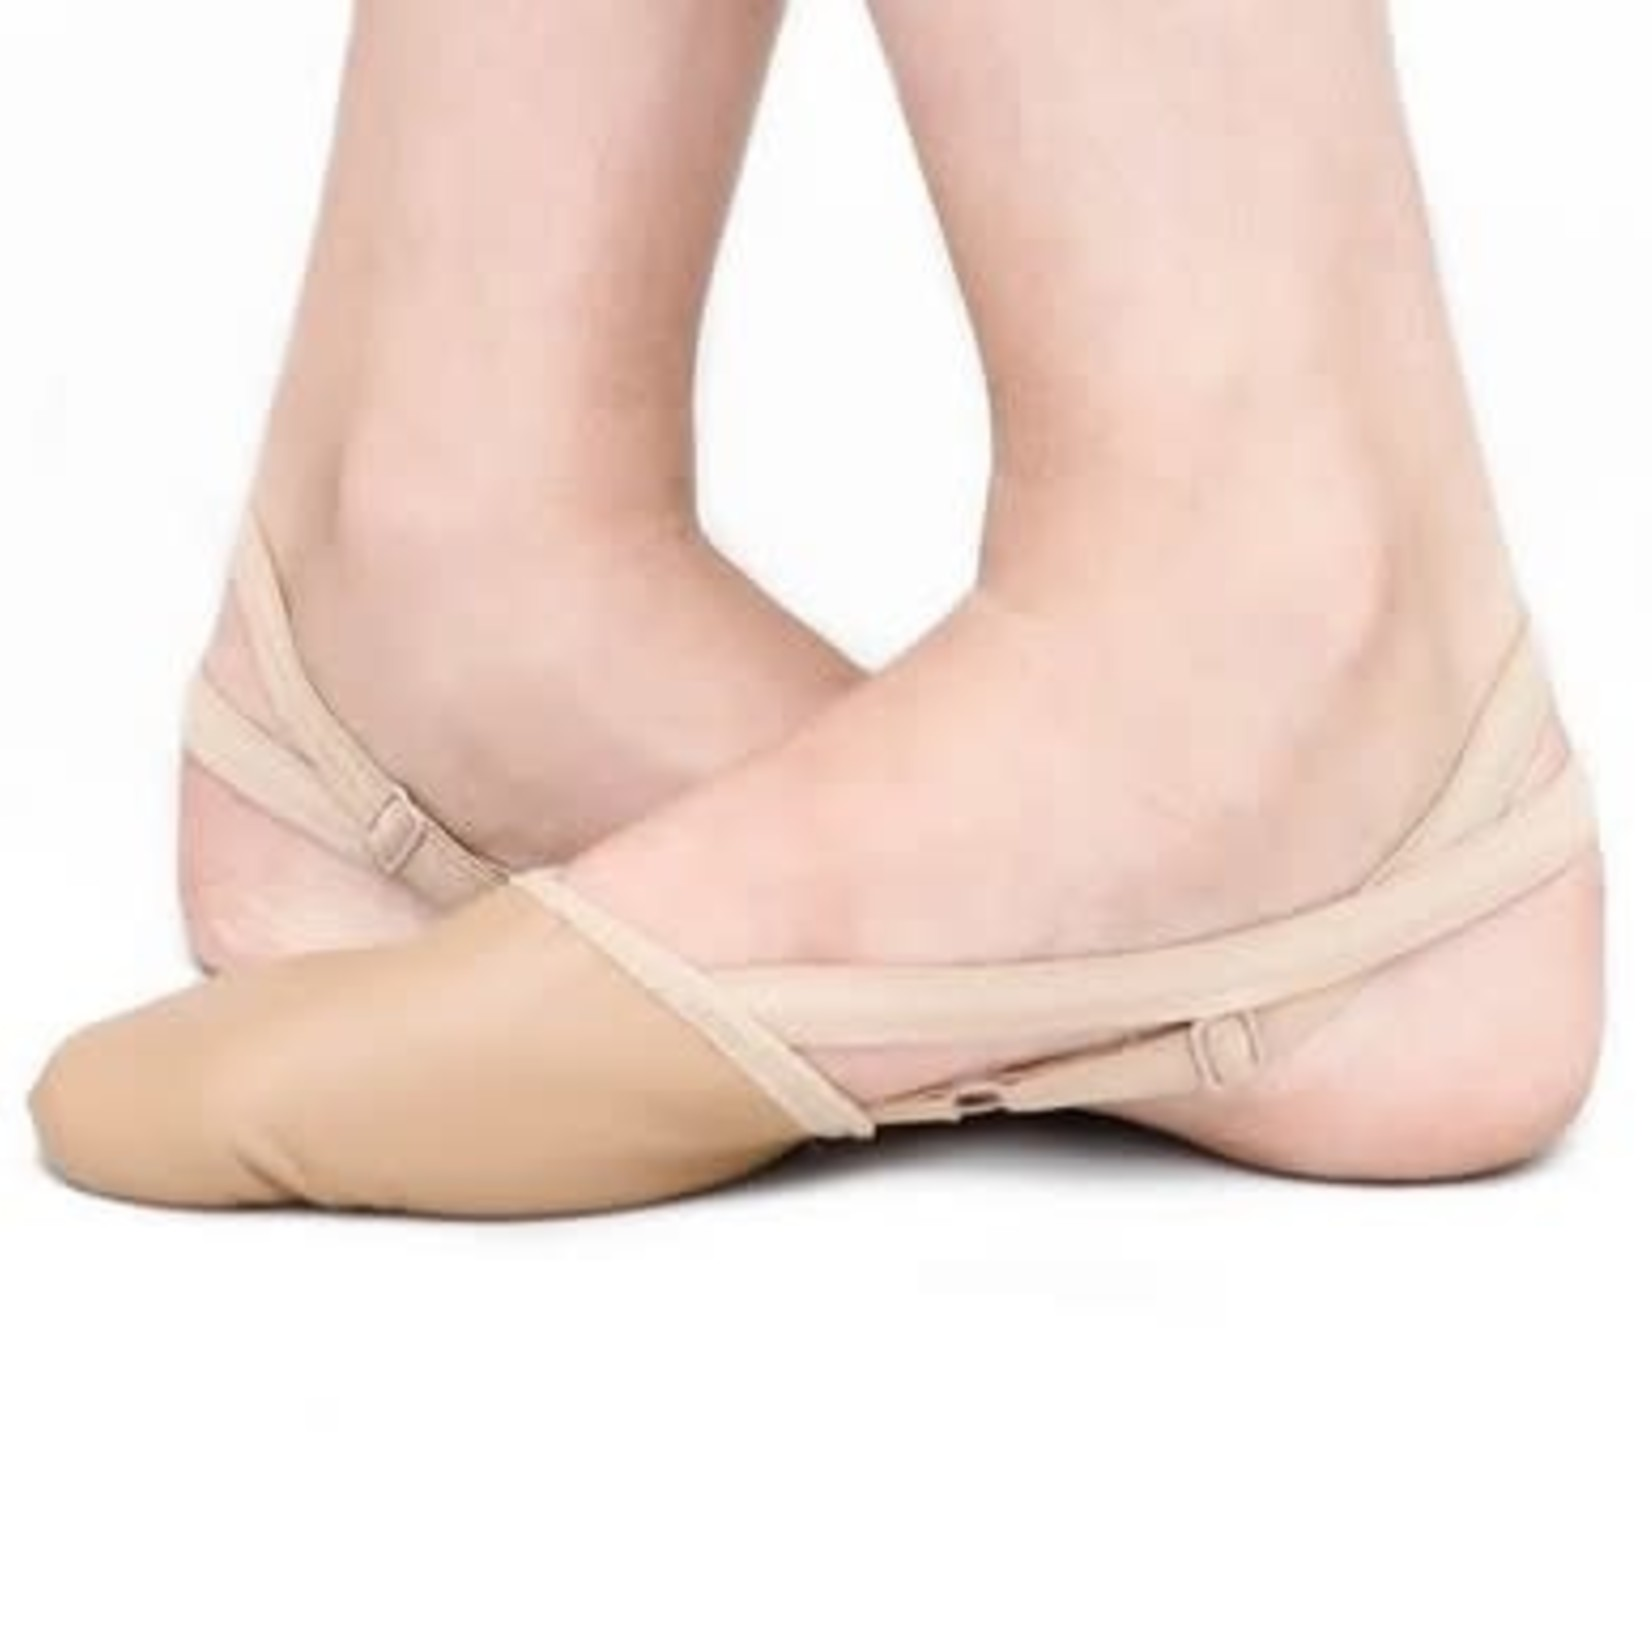 Body Wrappers Body Wrappers 621A/C Leather Half Sole Shoe